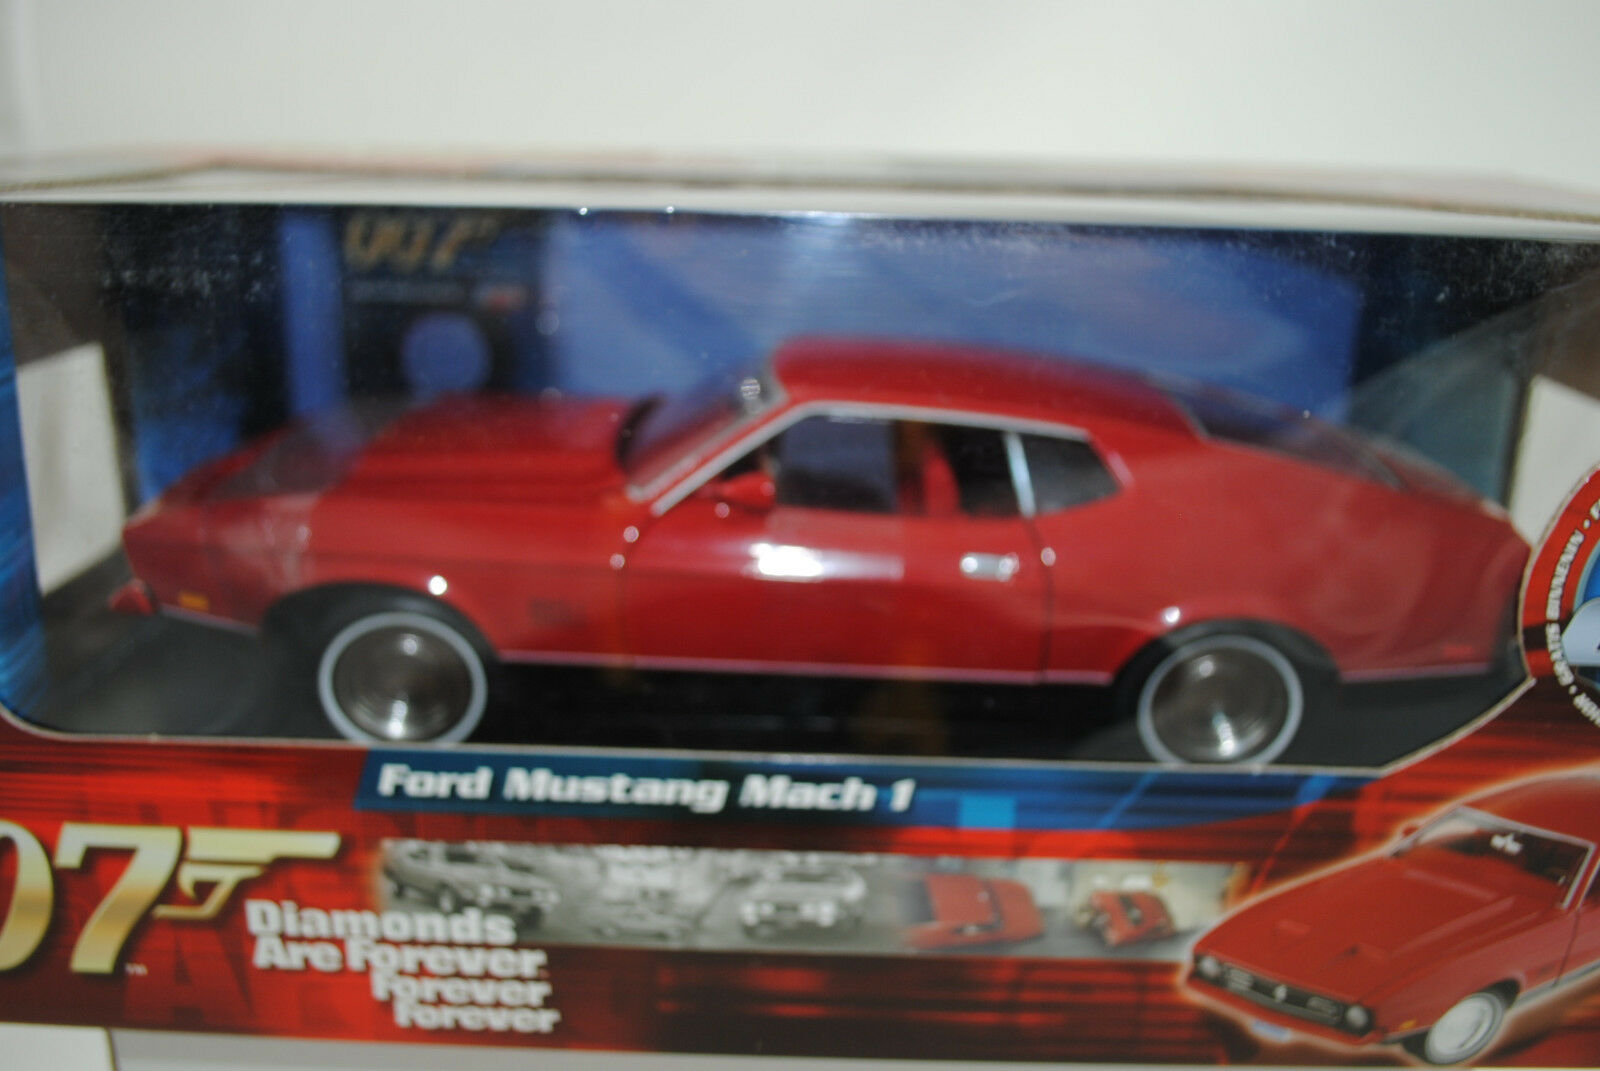 1 18 Ertl Ford Ford Ford Mustang Mach 1 James Bond 007 Diamonds are Forever Neu OVP 5a4b10